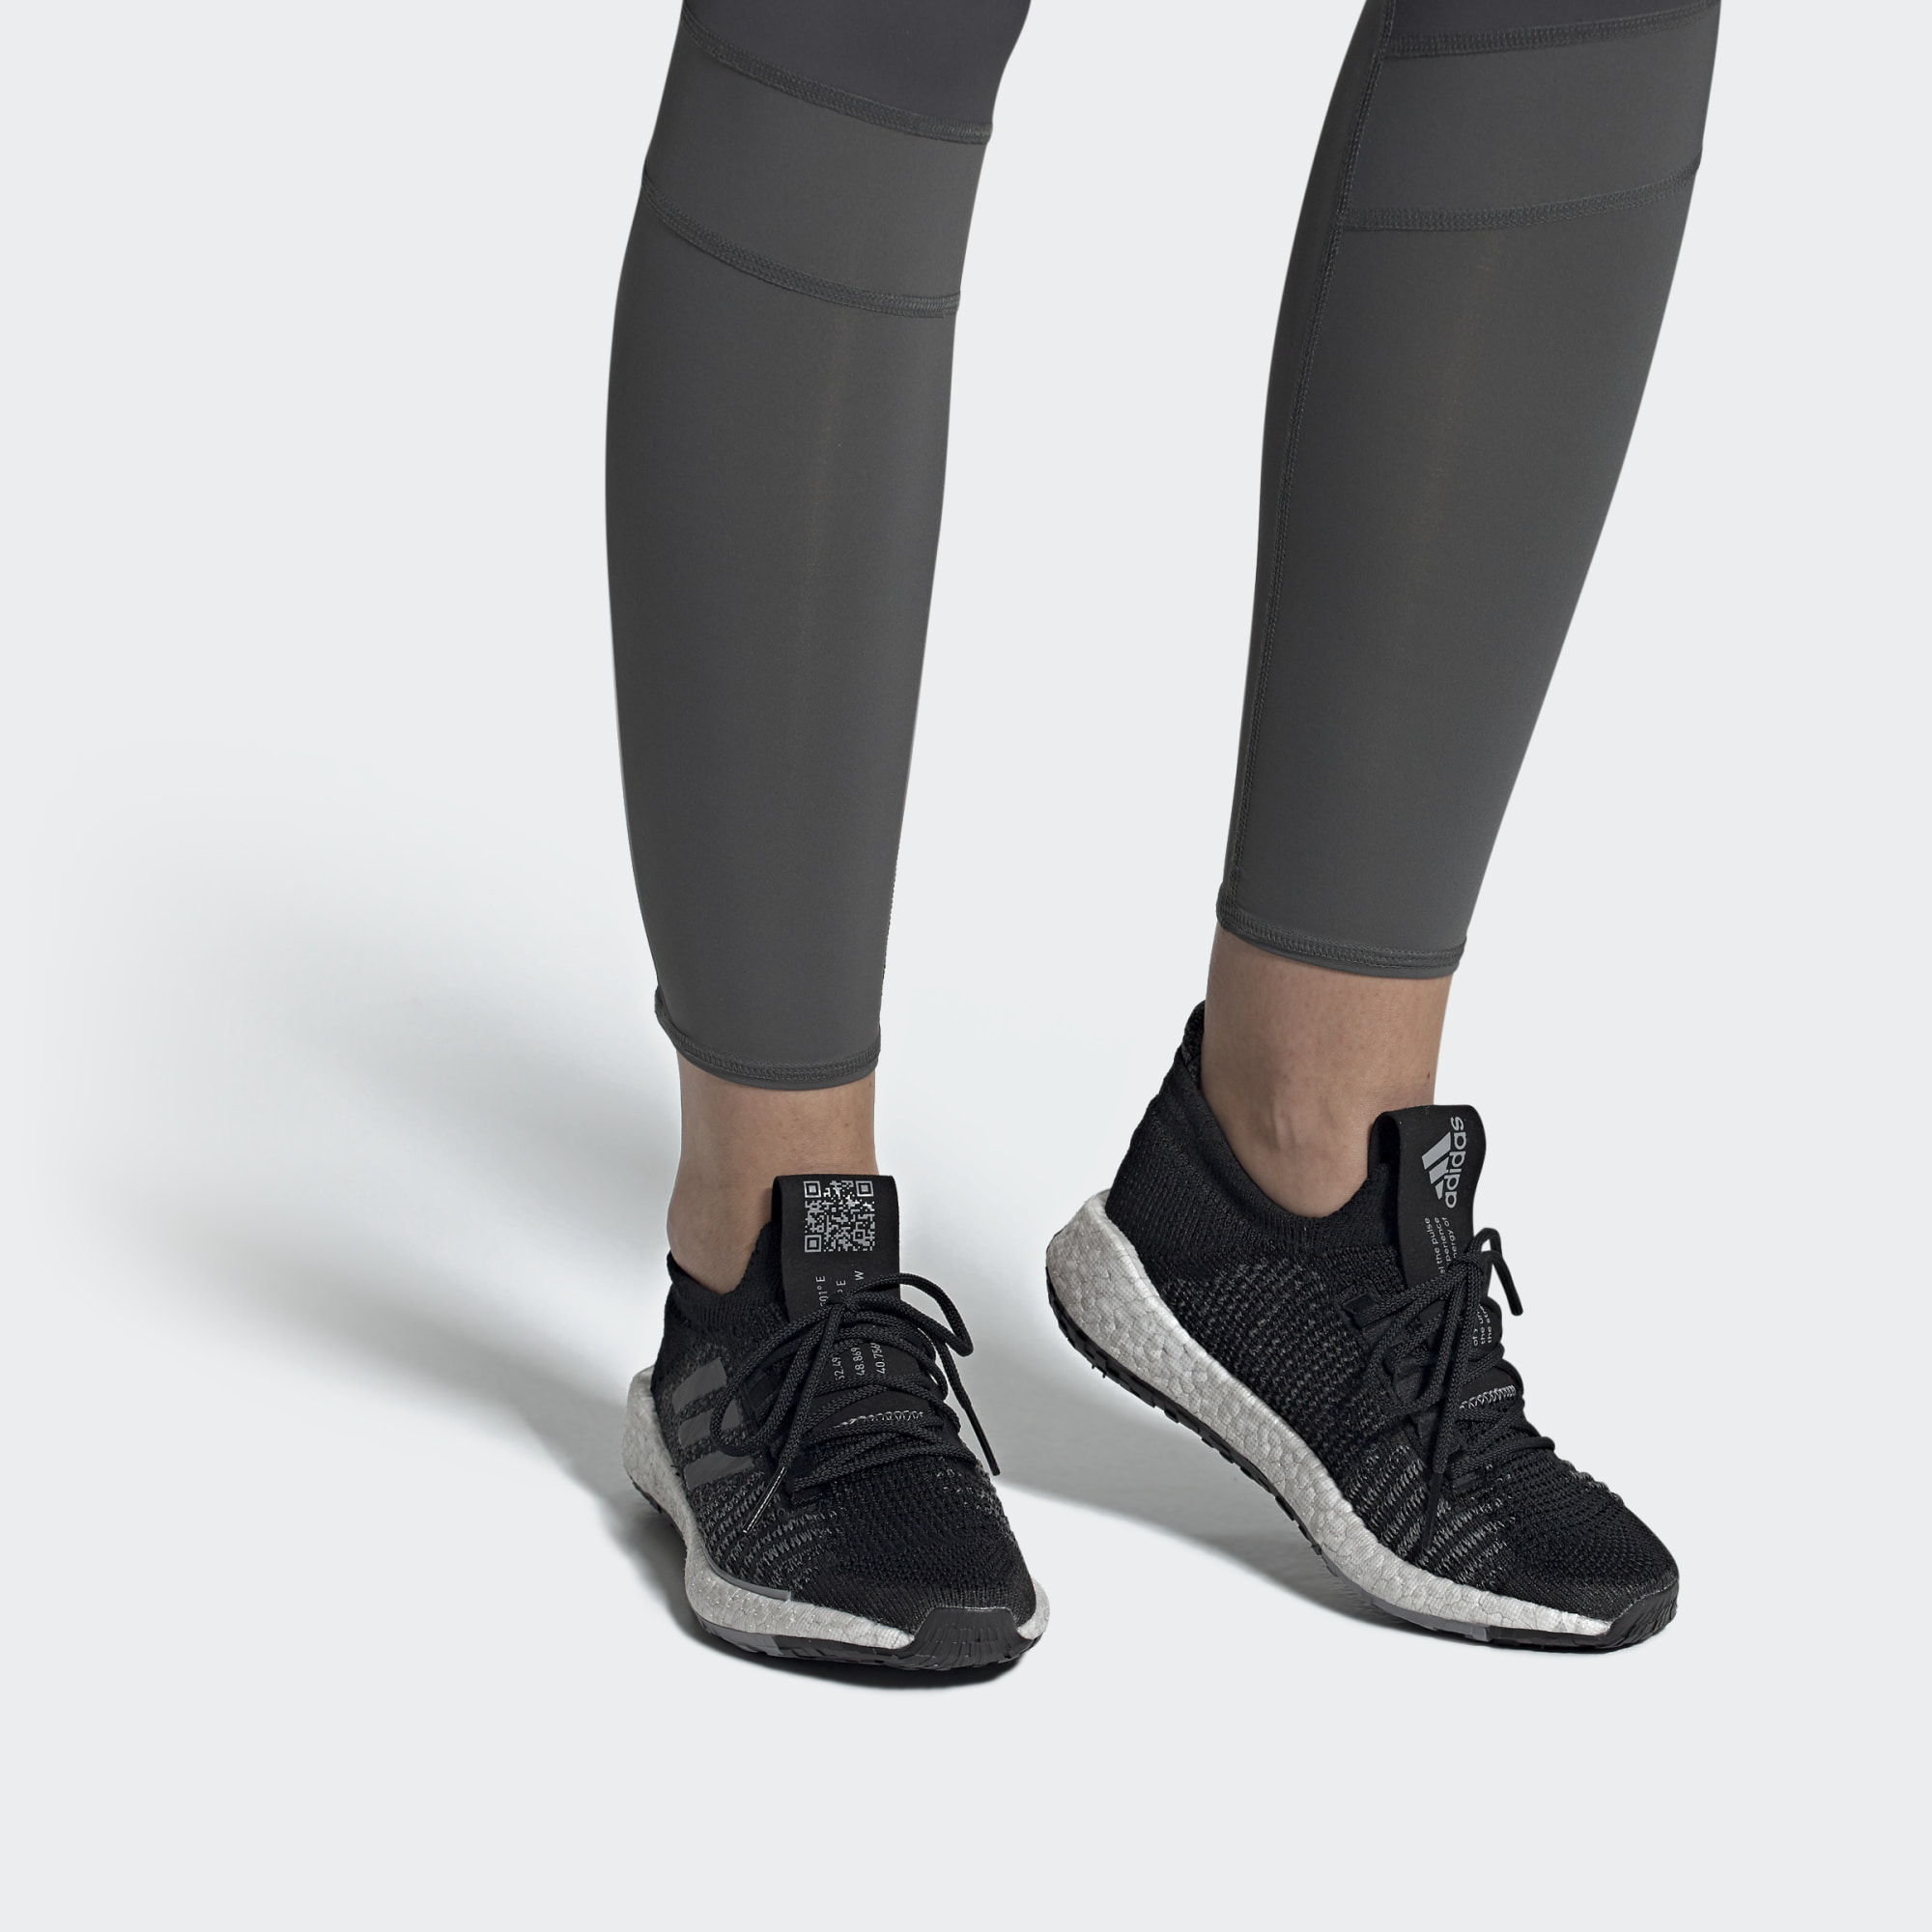 Giày thể thao nam Adidas Pulseboost HD G26935